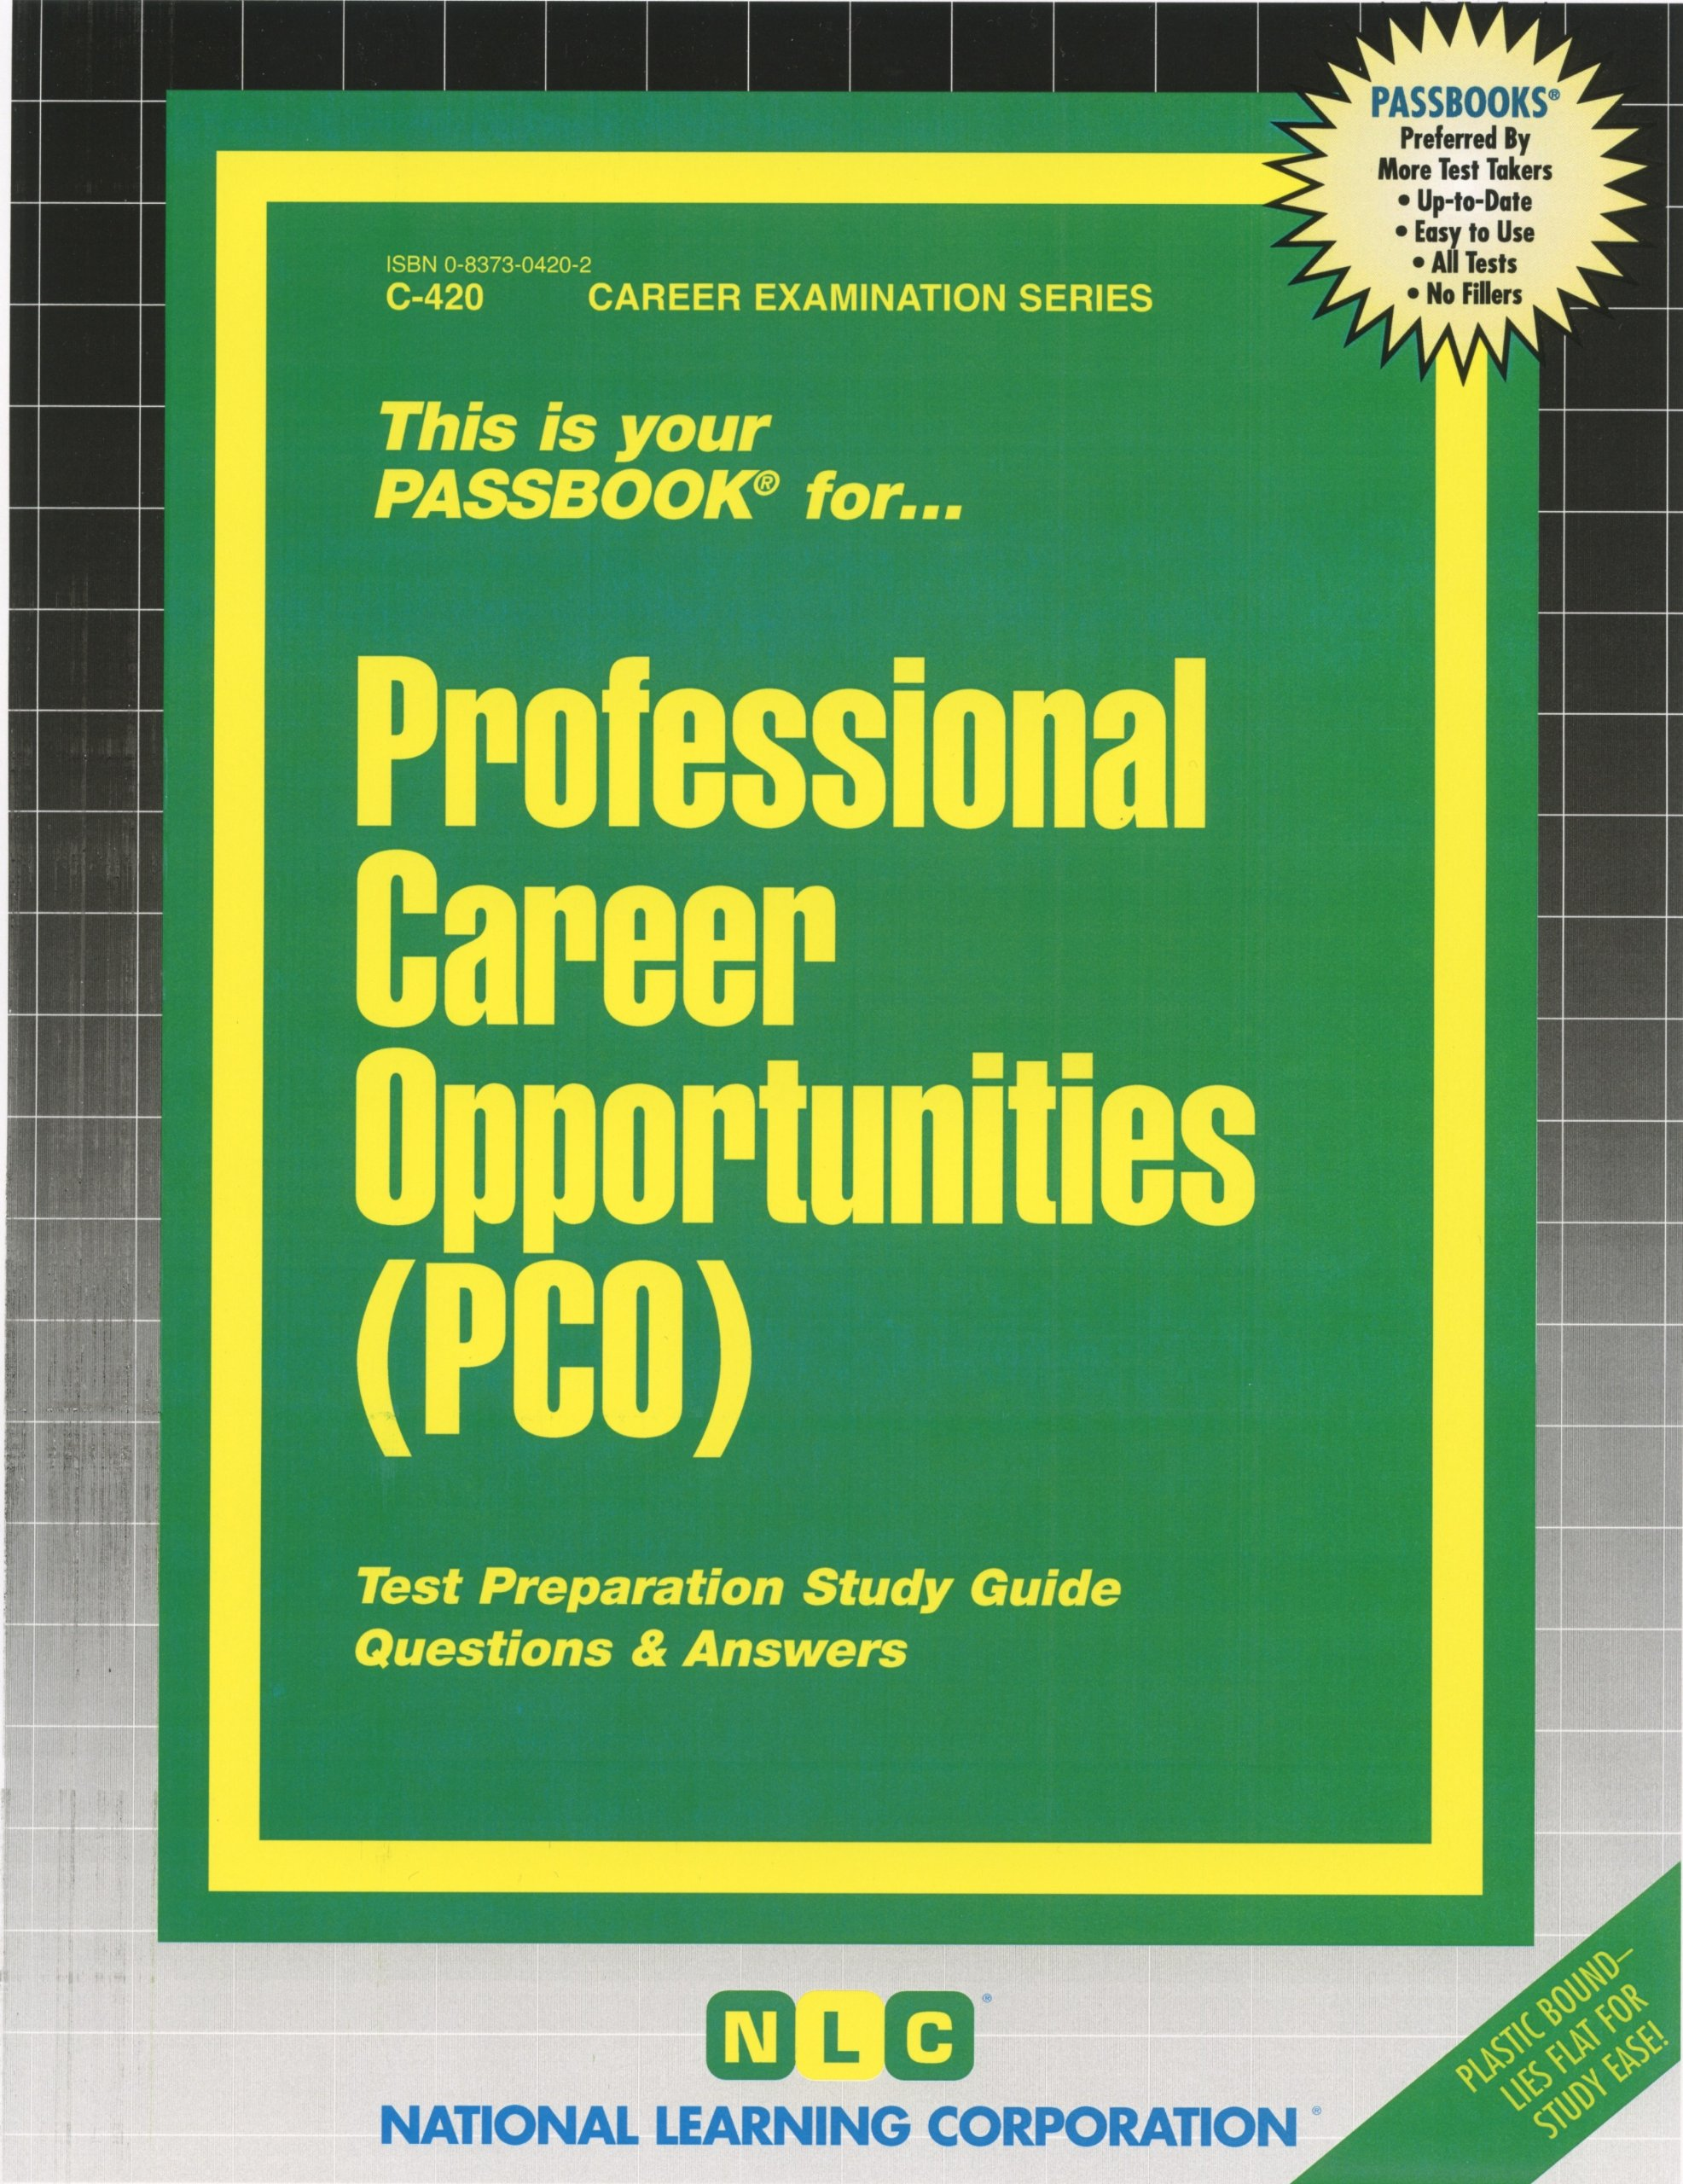 Professional Career Opportunities (PCO) (Passbooks): Passbooks:  9780829304206: Amazon.com: Books